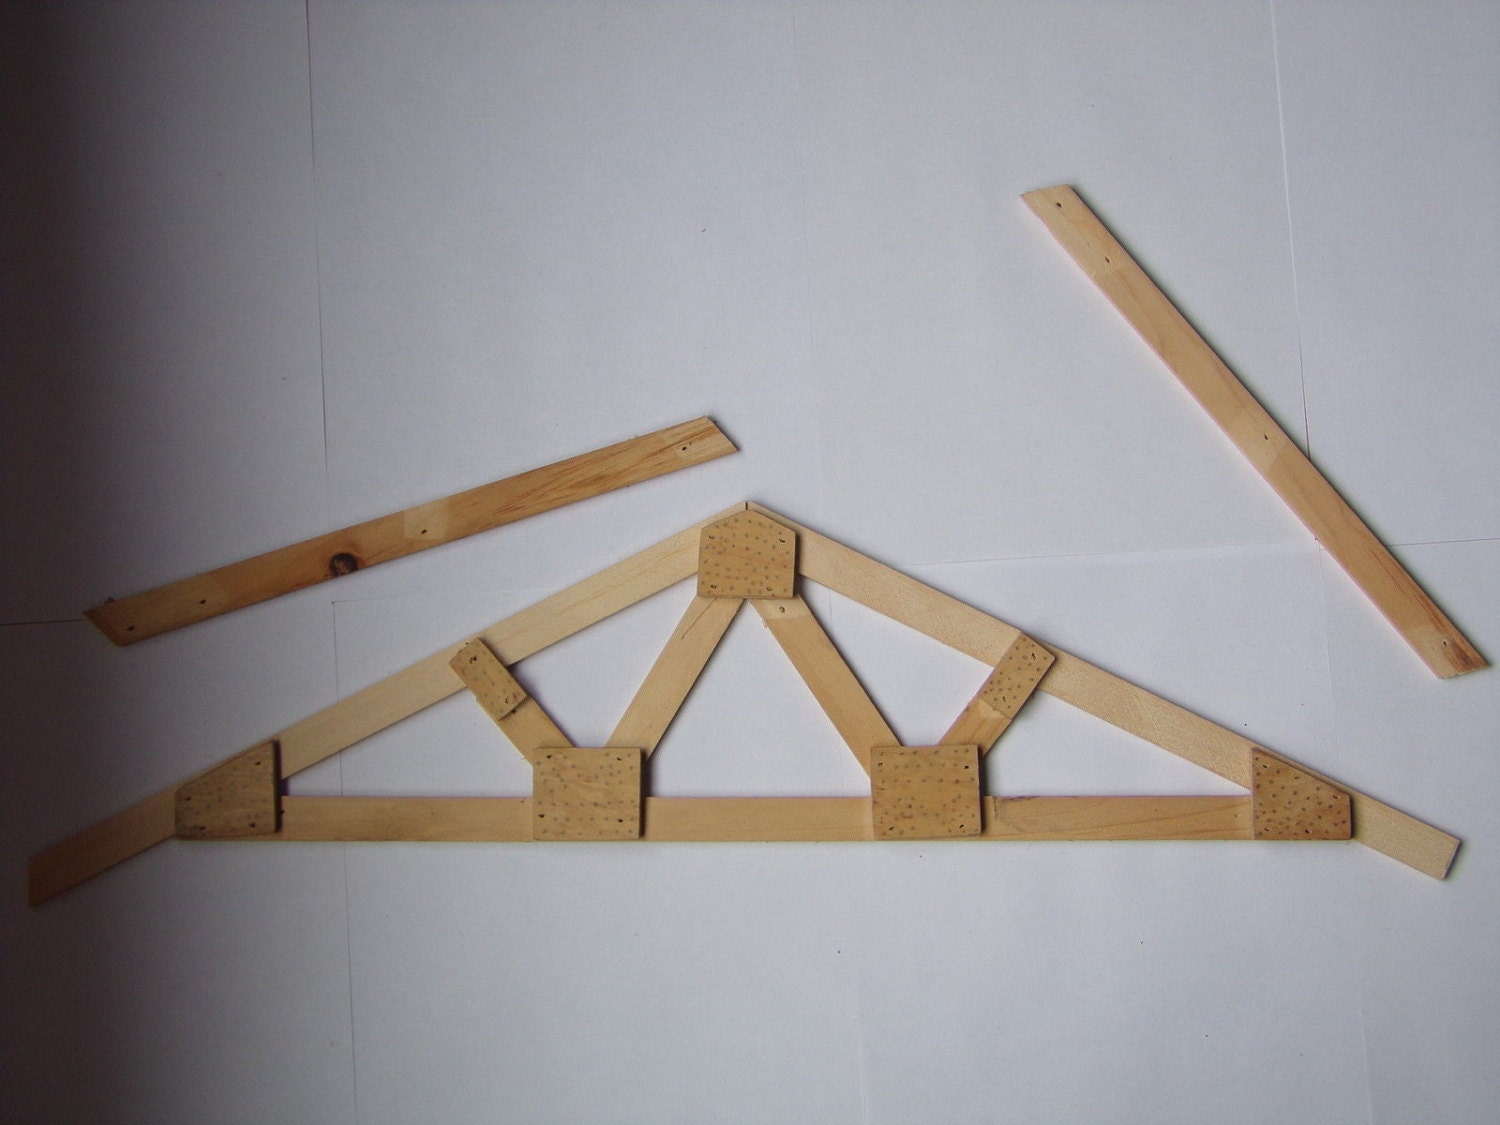 Roof truss plans how to build make your own by howtobuildplans for Building your own roof trusses